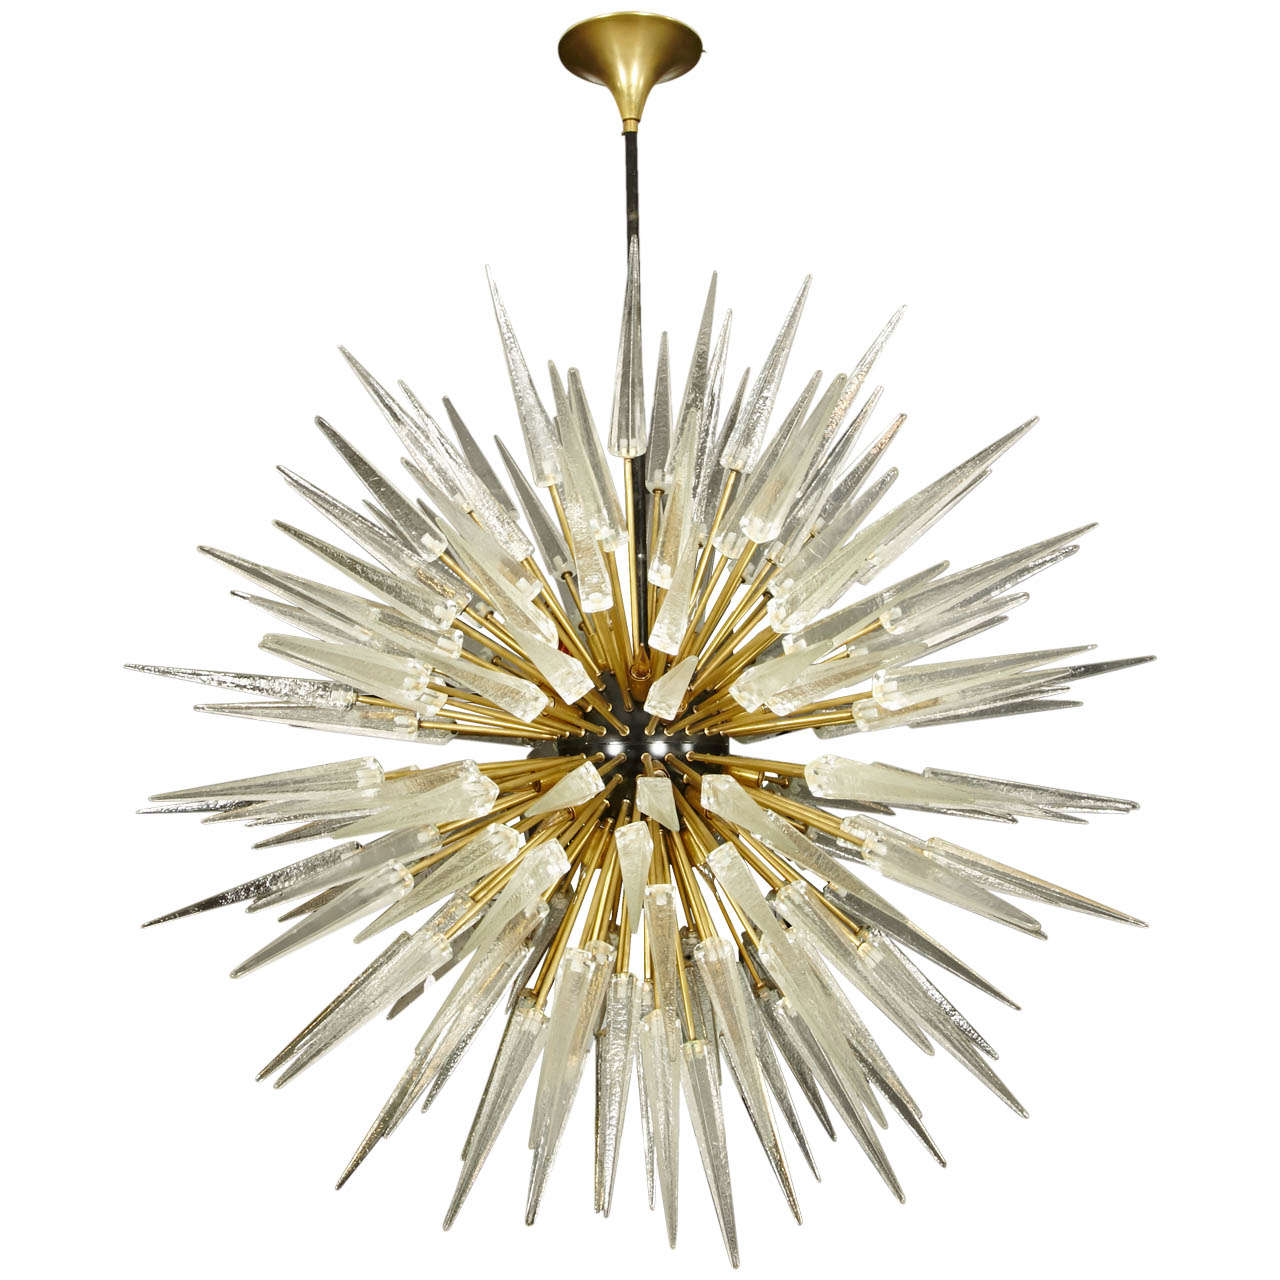 Pair of Murano Glass Chandeliers For Sale at 1stdibs